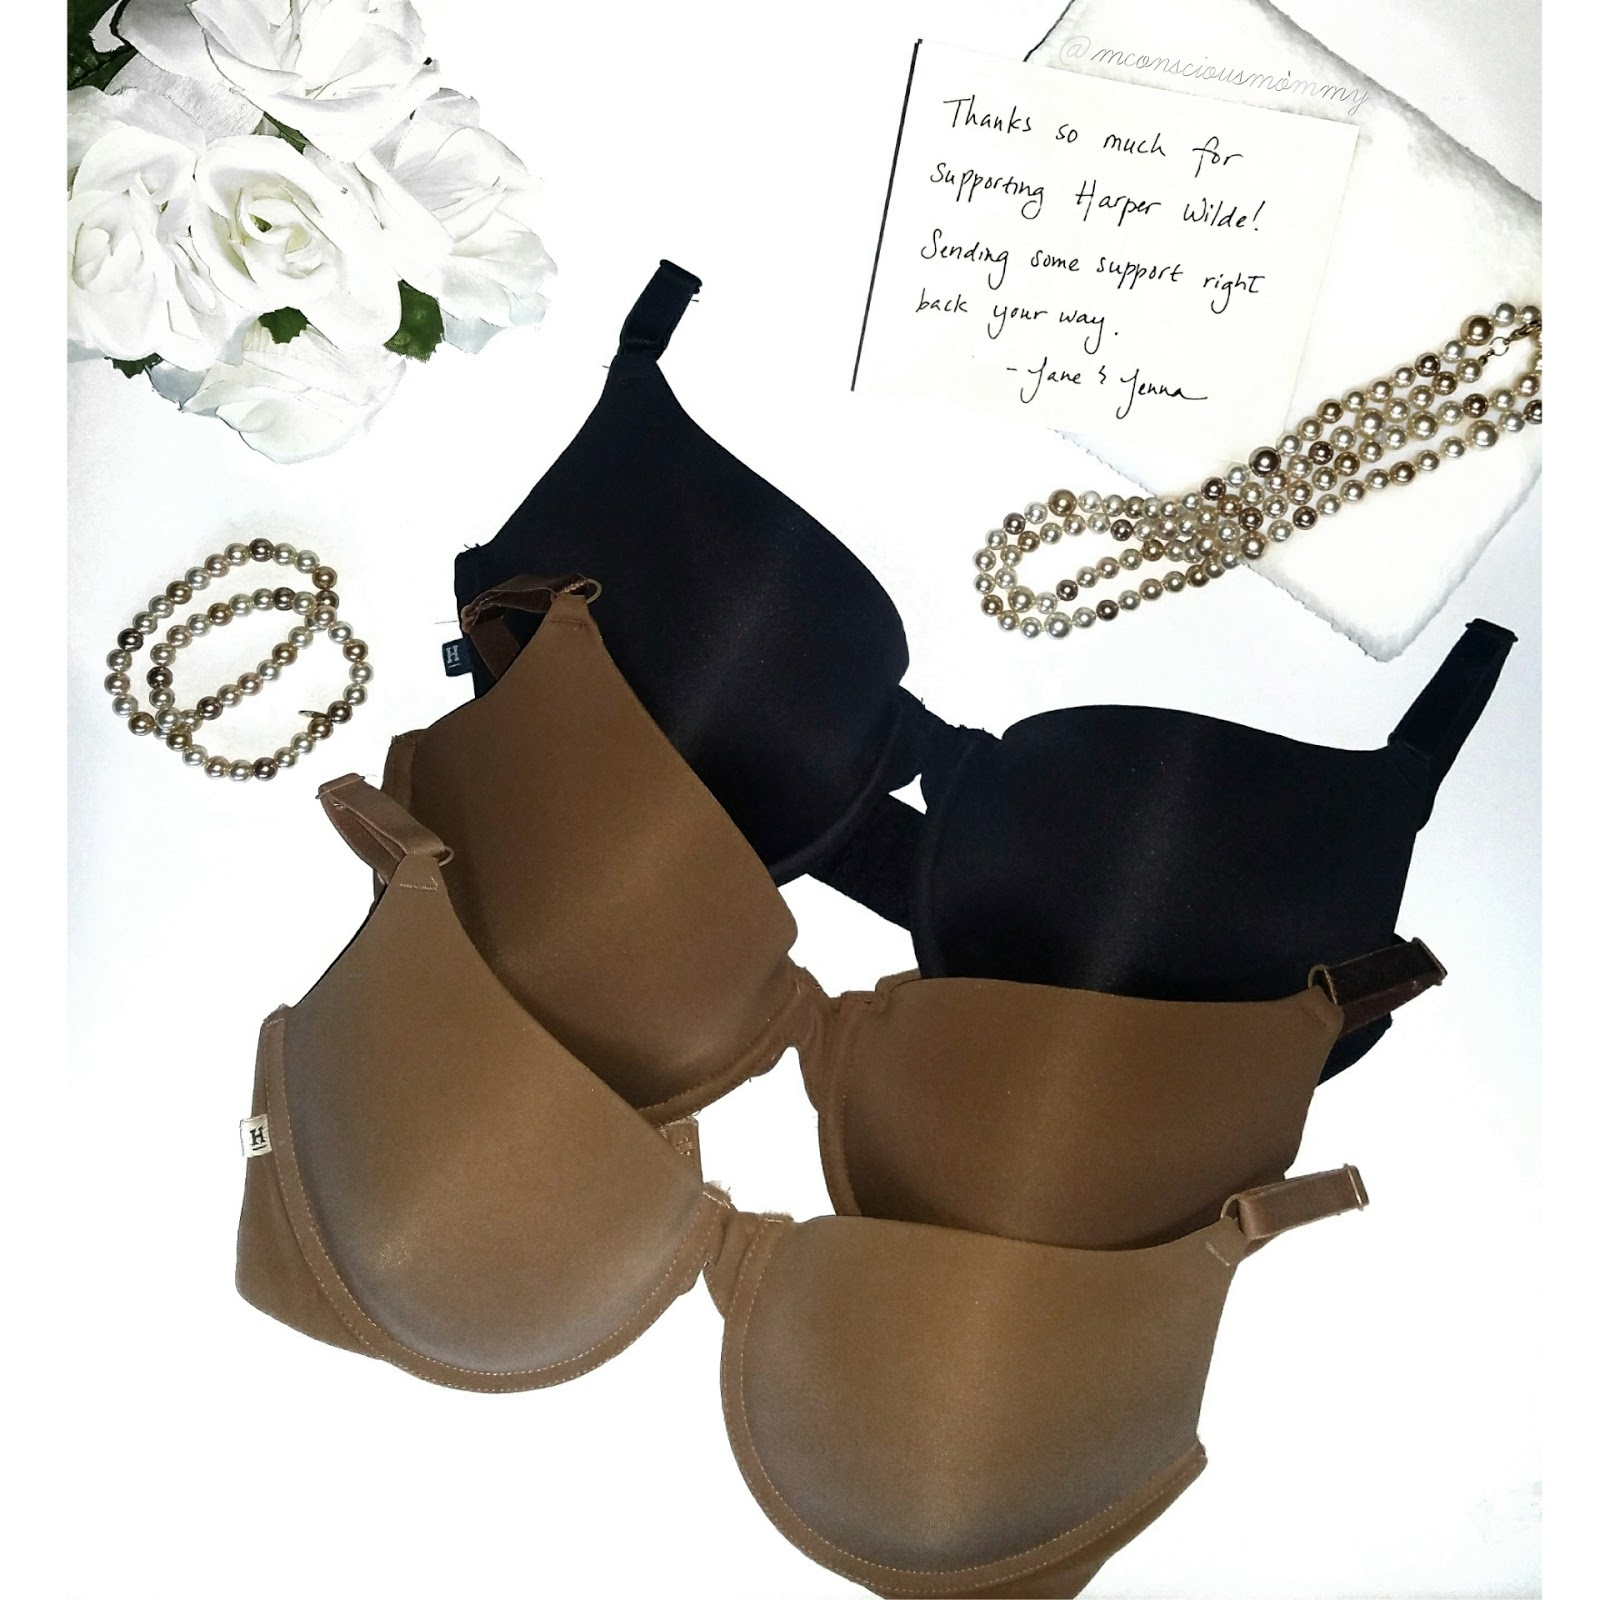 72a6f43f65 Harper Wilde Bra   Shopping Experience Review - Money Conscious Mommy